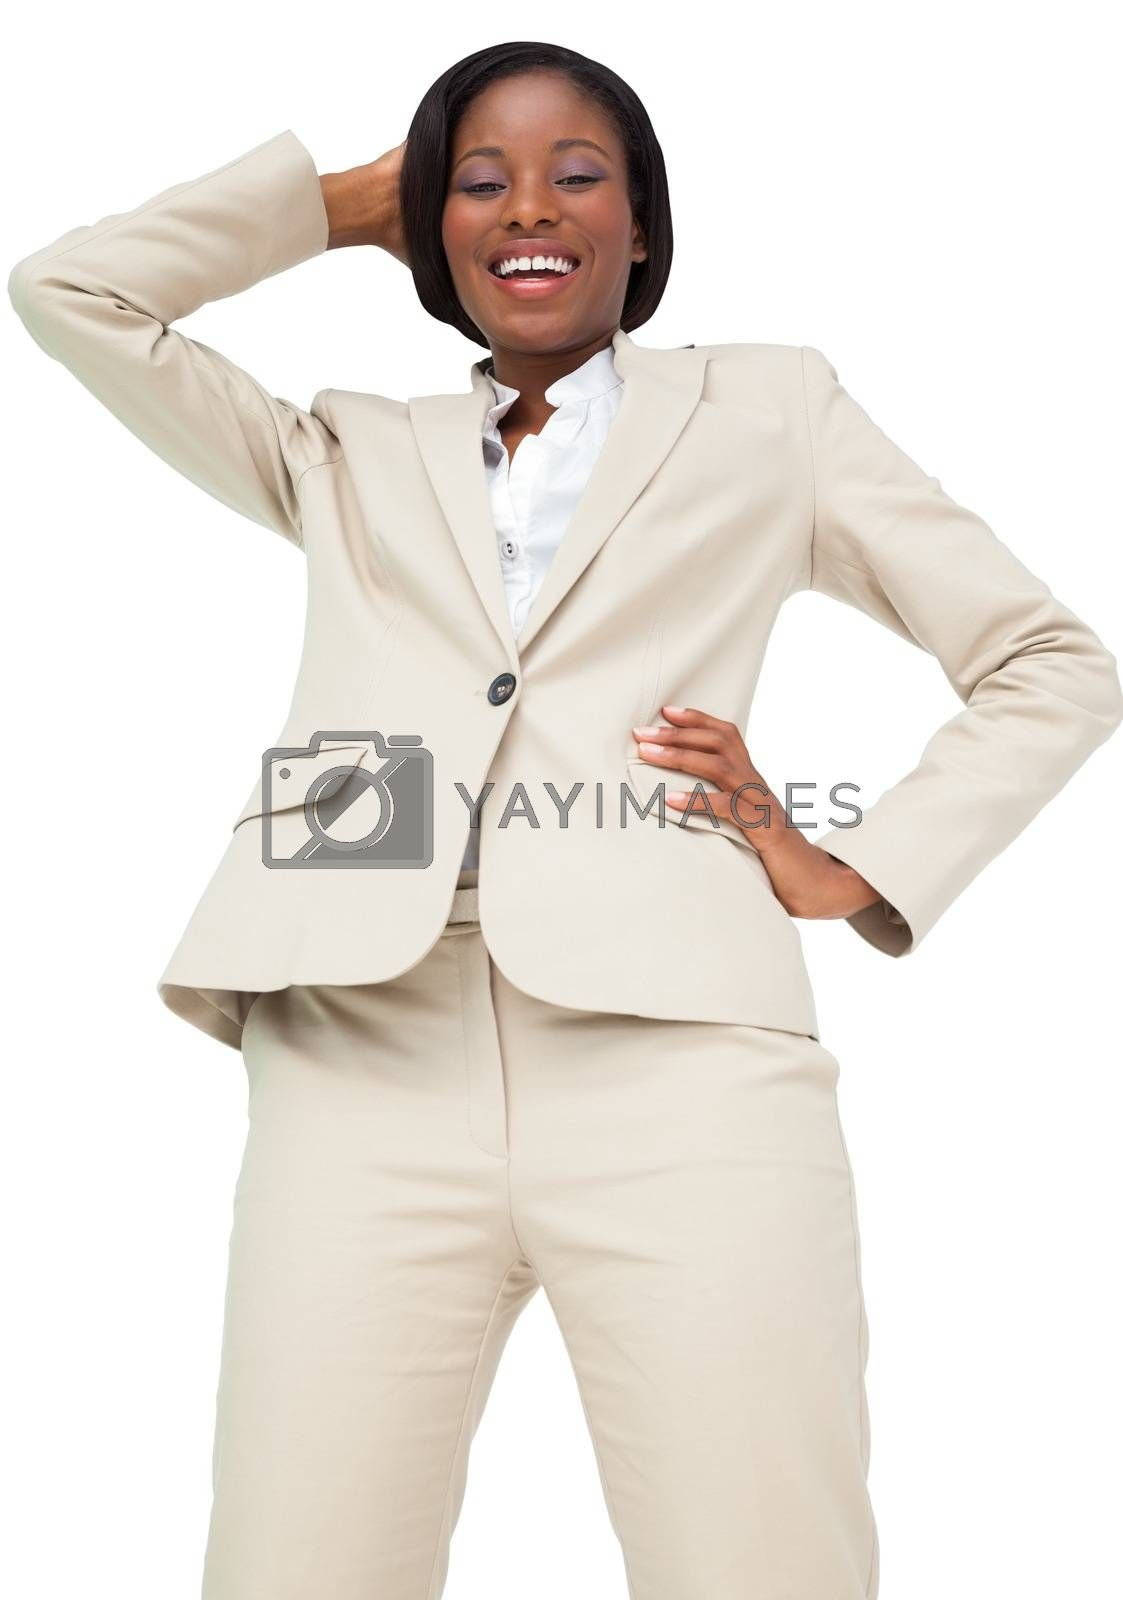 Royalty free image of Thinking businesswoman in cream suit by Wavebreakmedia